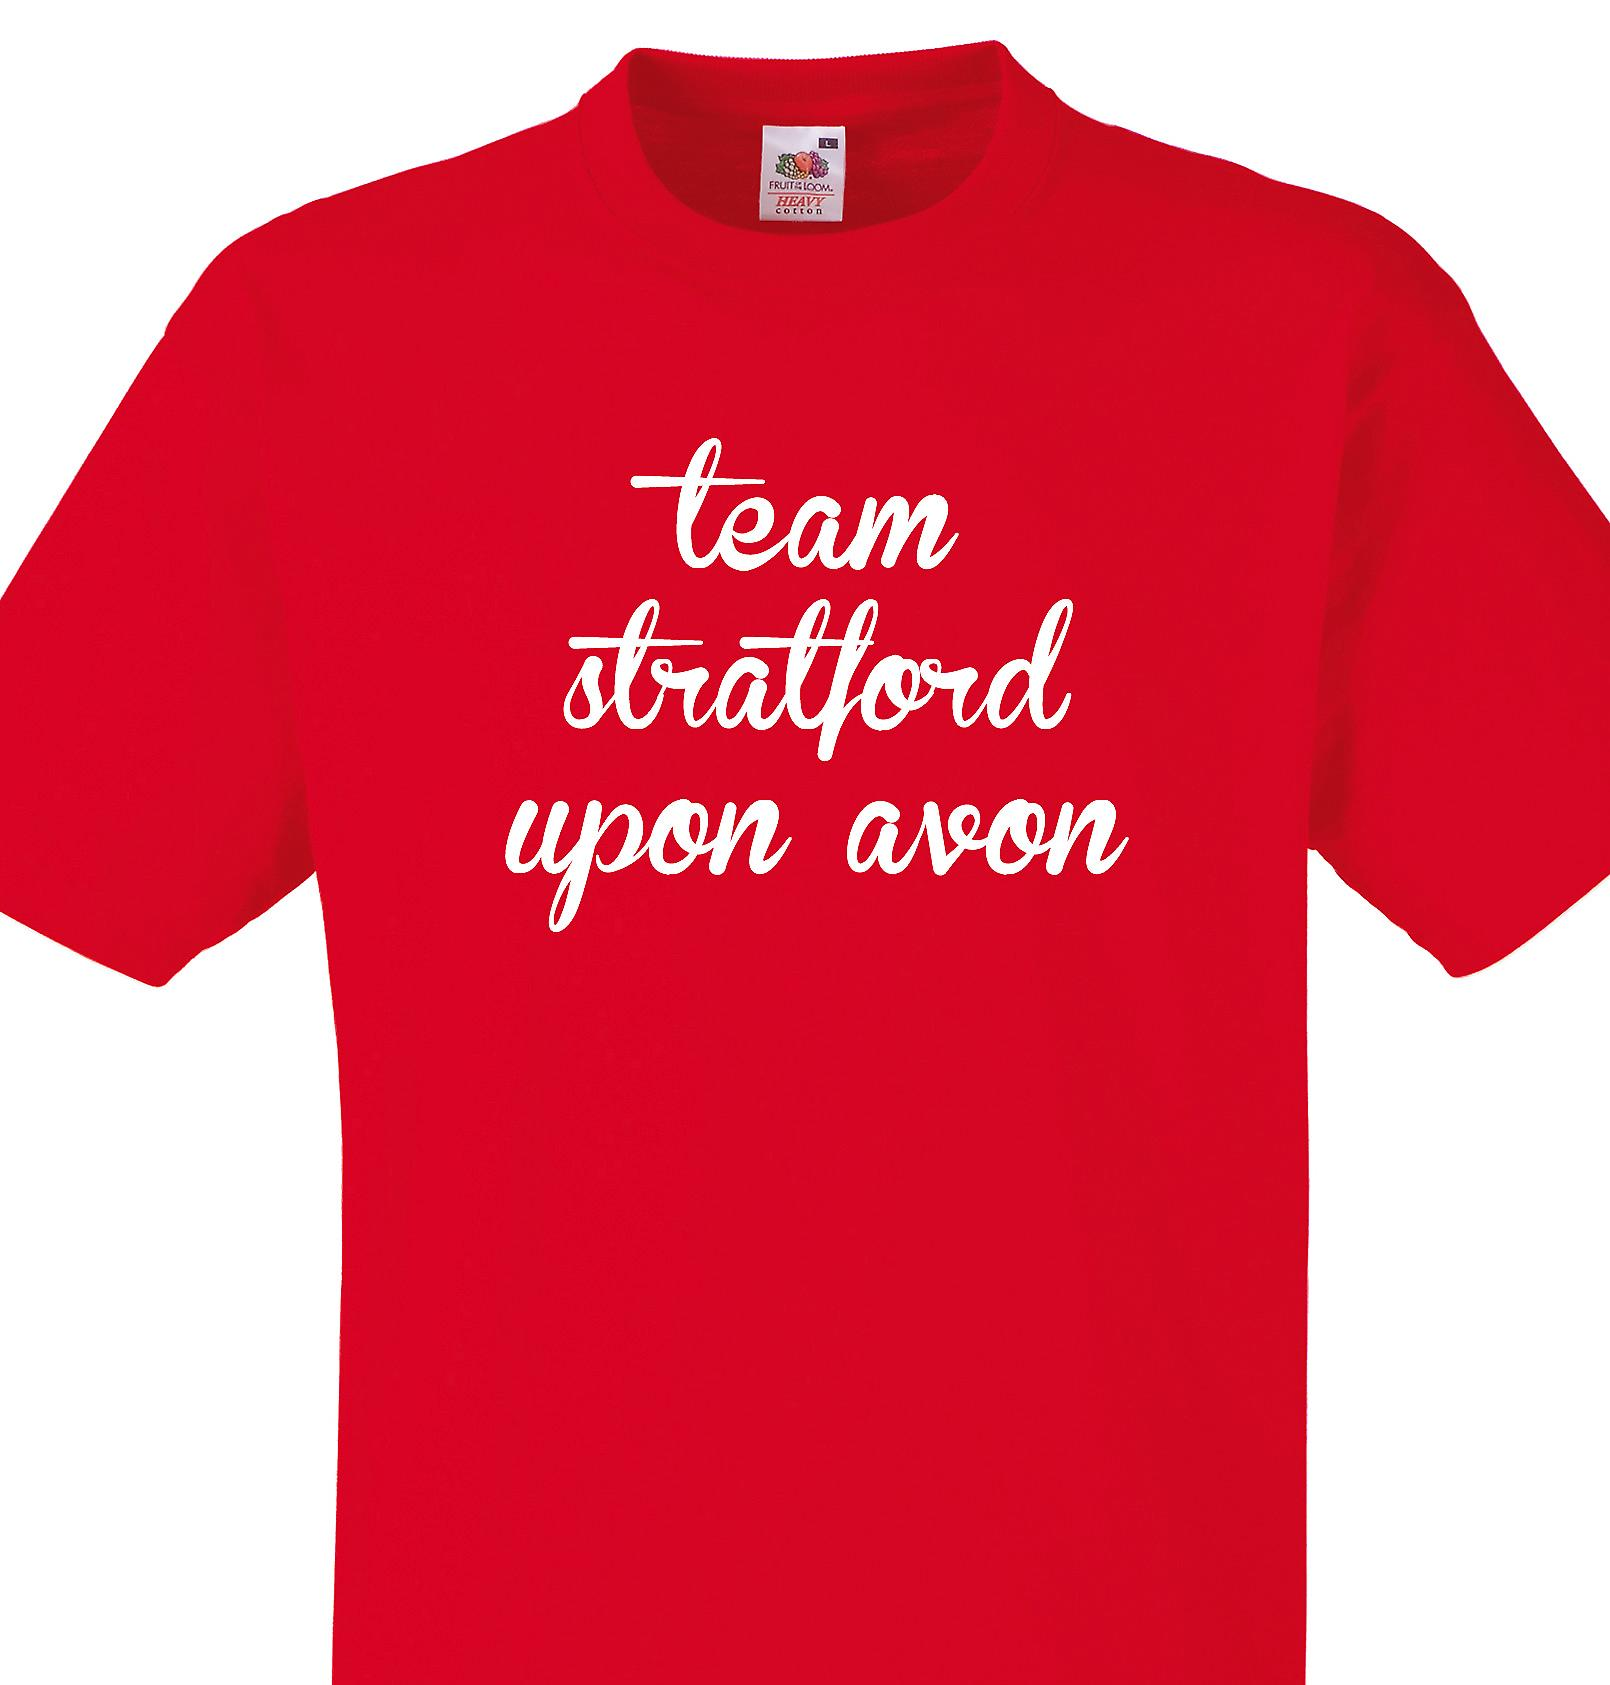 Team Stratford upon avon Red T shirt